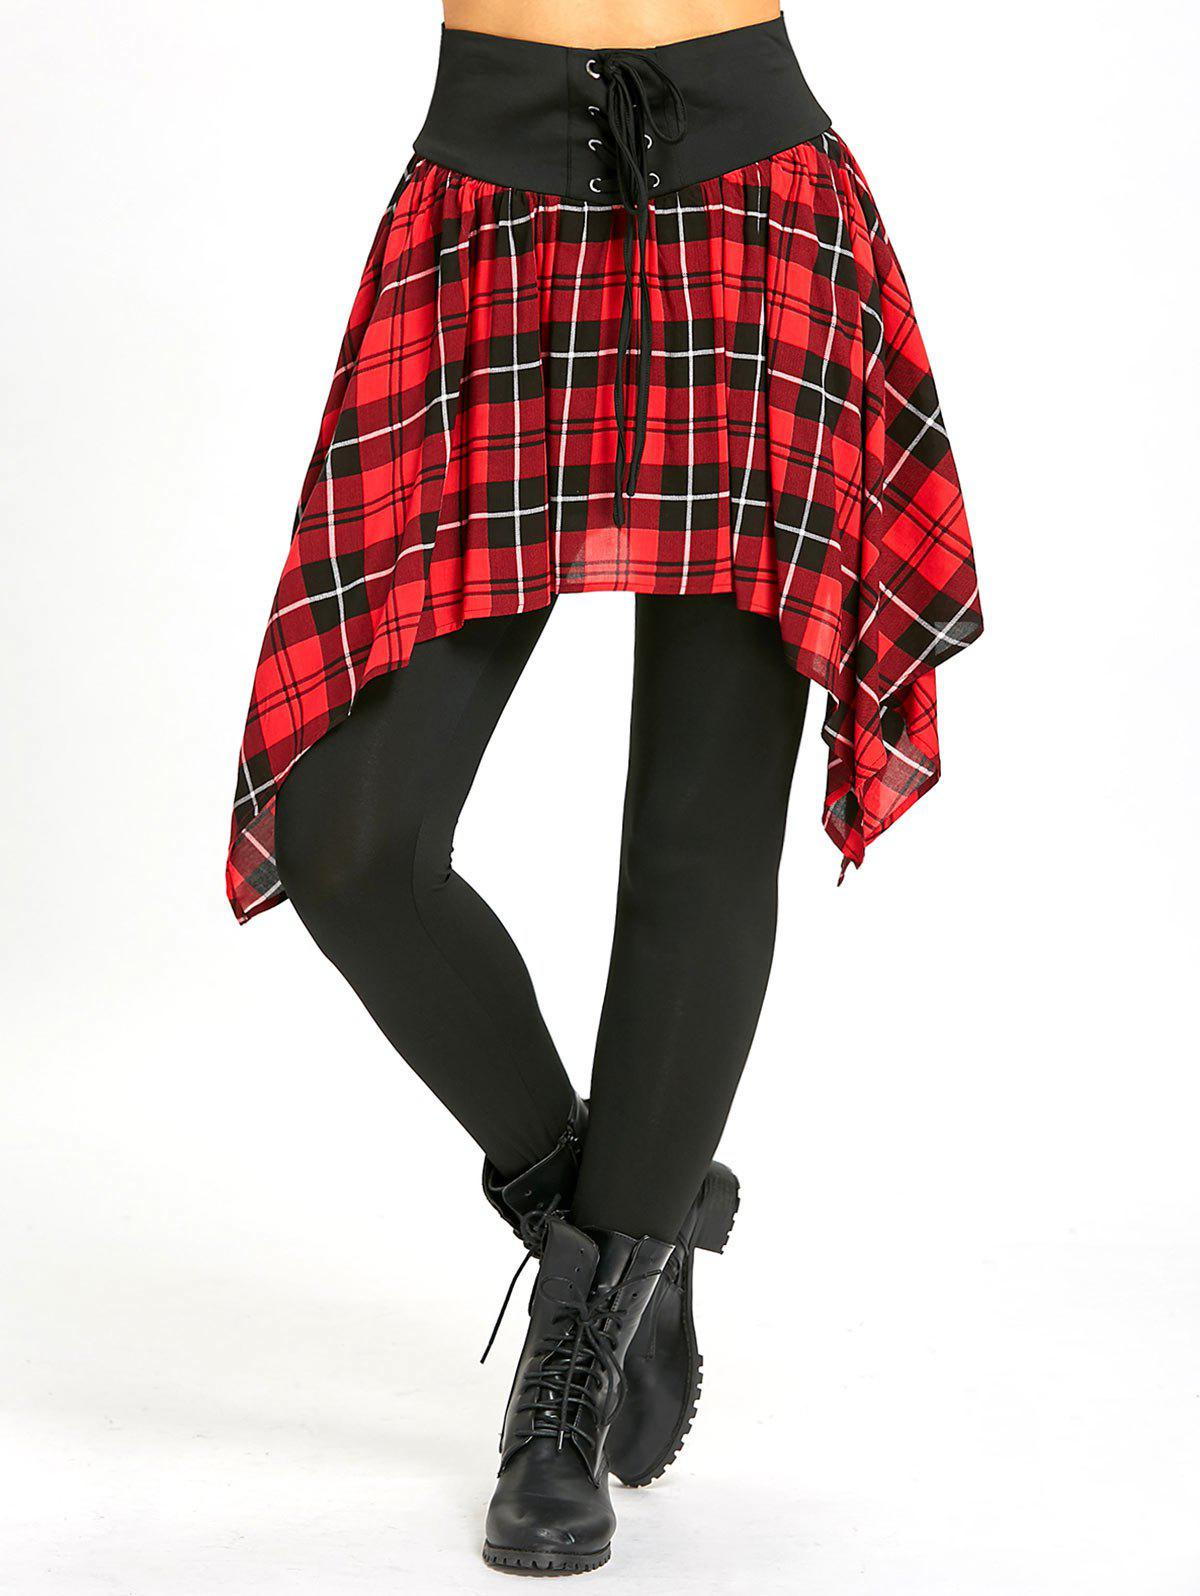 Asymmetric Plaid Lace Up Tight Skirted Leggings - BLACK/RED M